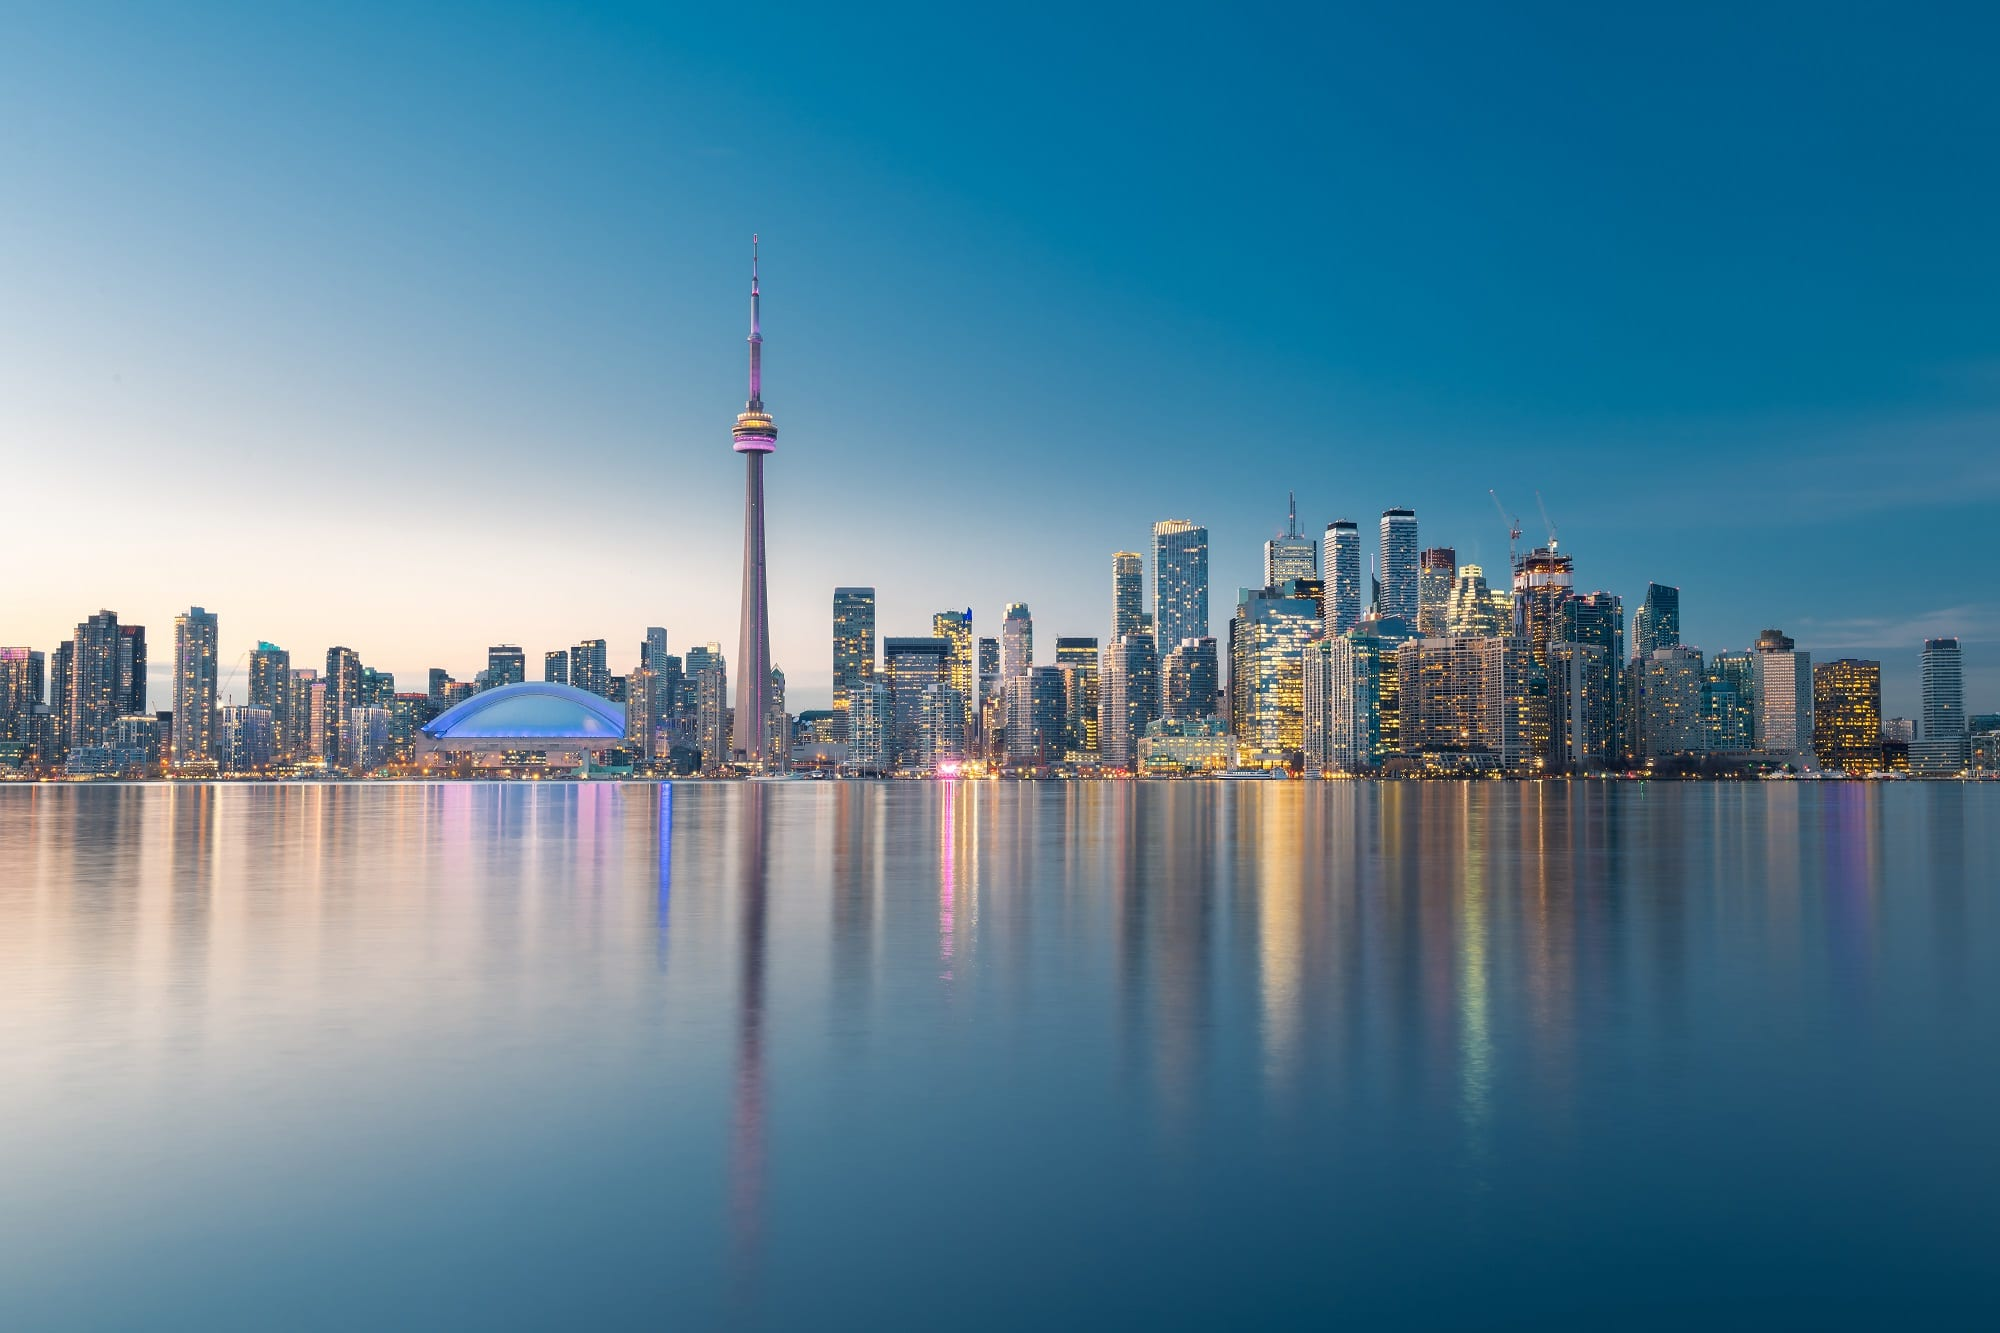 Toronto city skyline, Ontario, Canada looking across the water at buildings at dusk